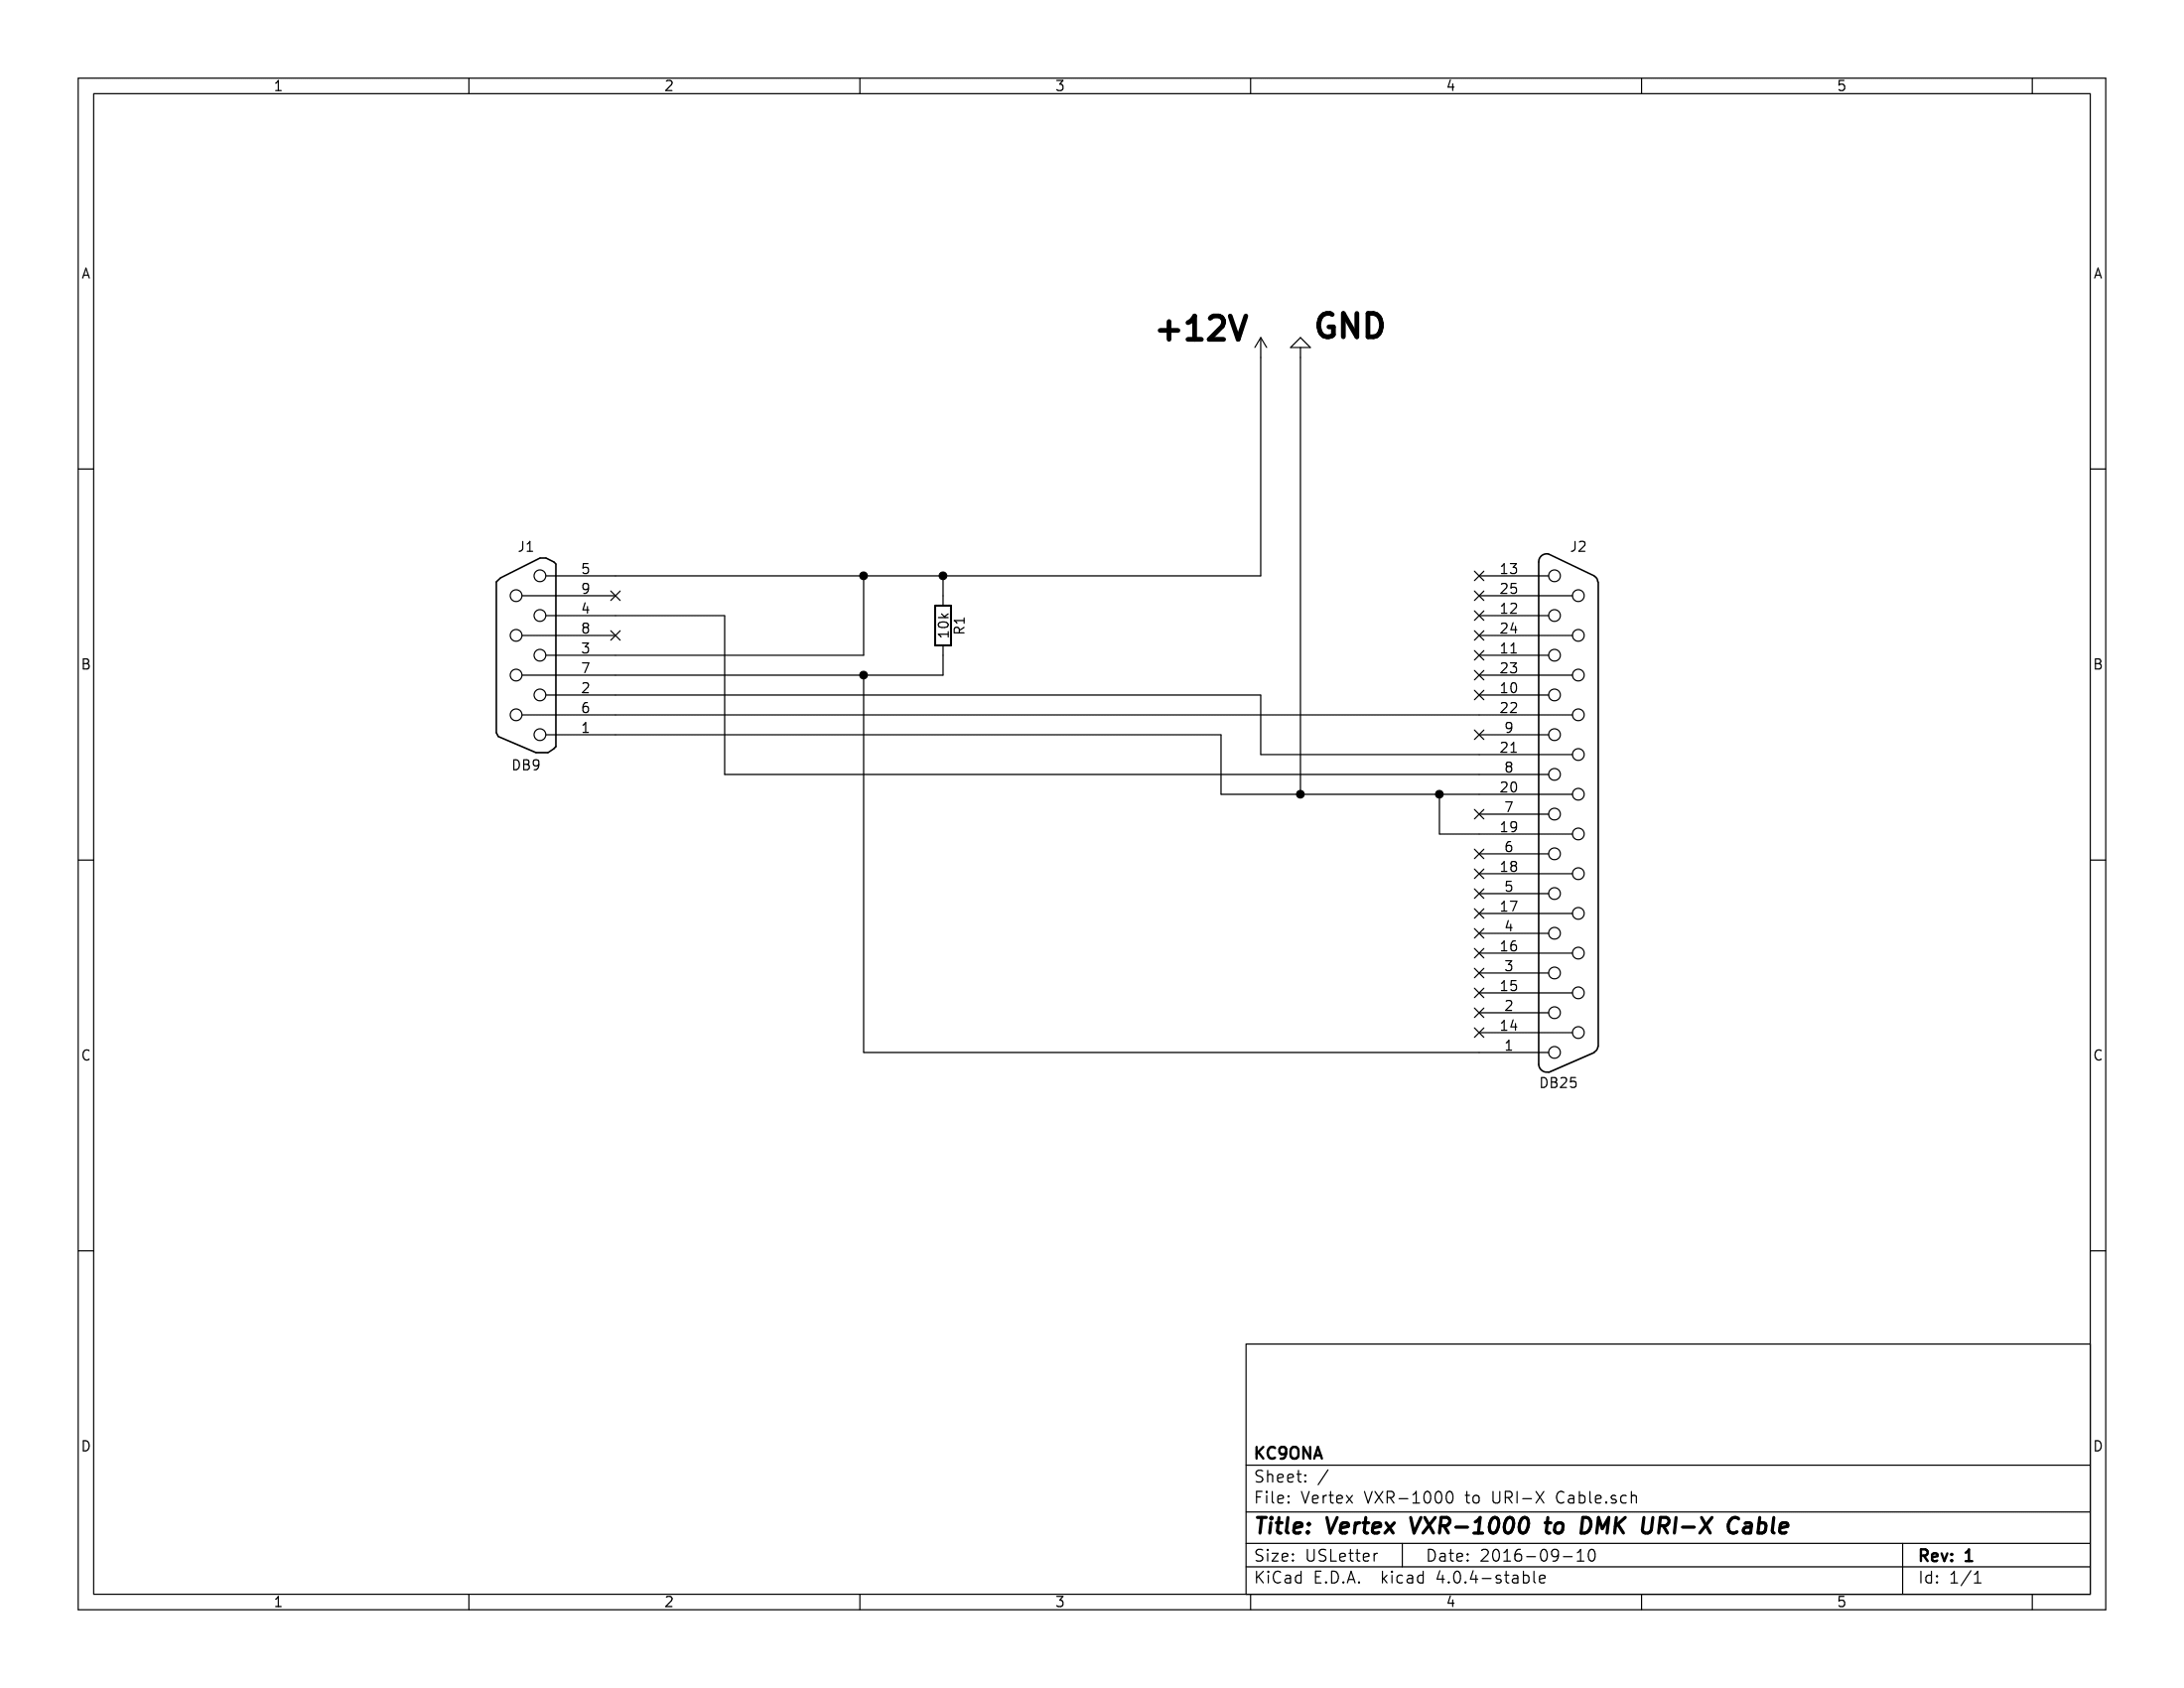 Cable Schematic